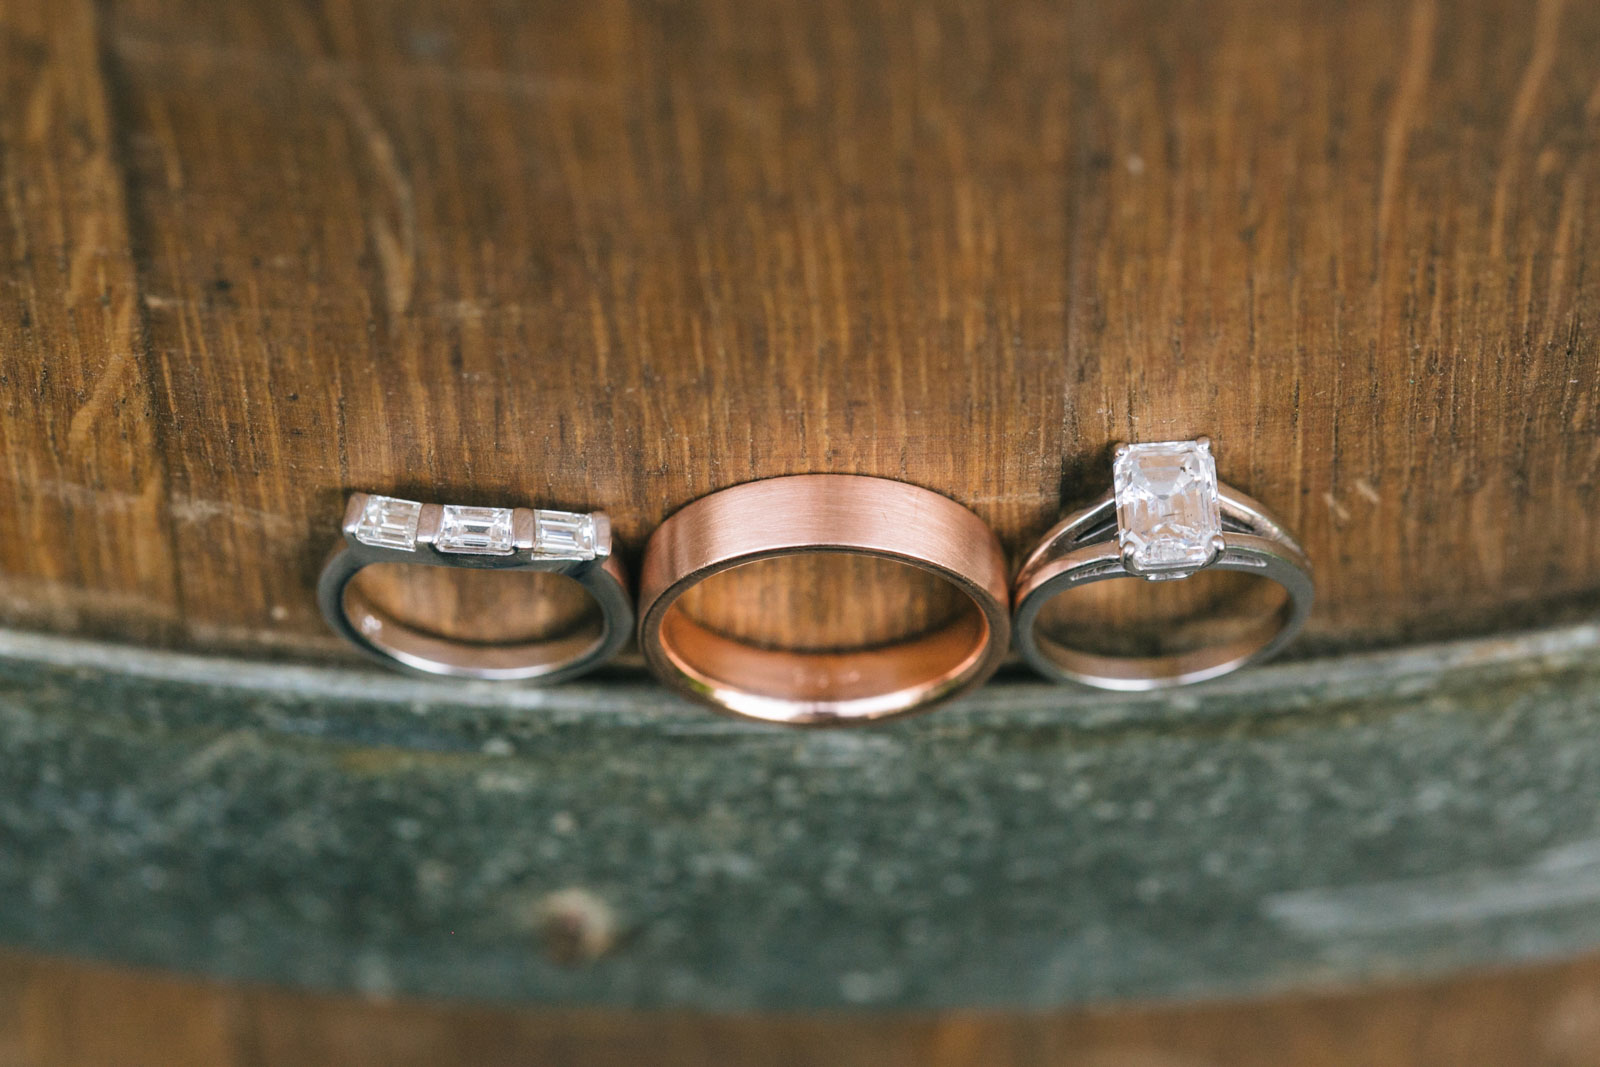 close up shot of simple wedding rings resting on antique wooden barrel at vintage-inspired wedding